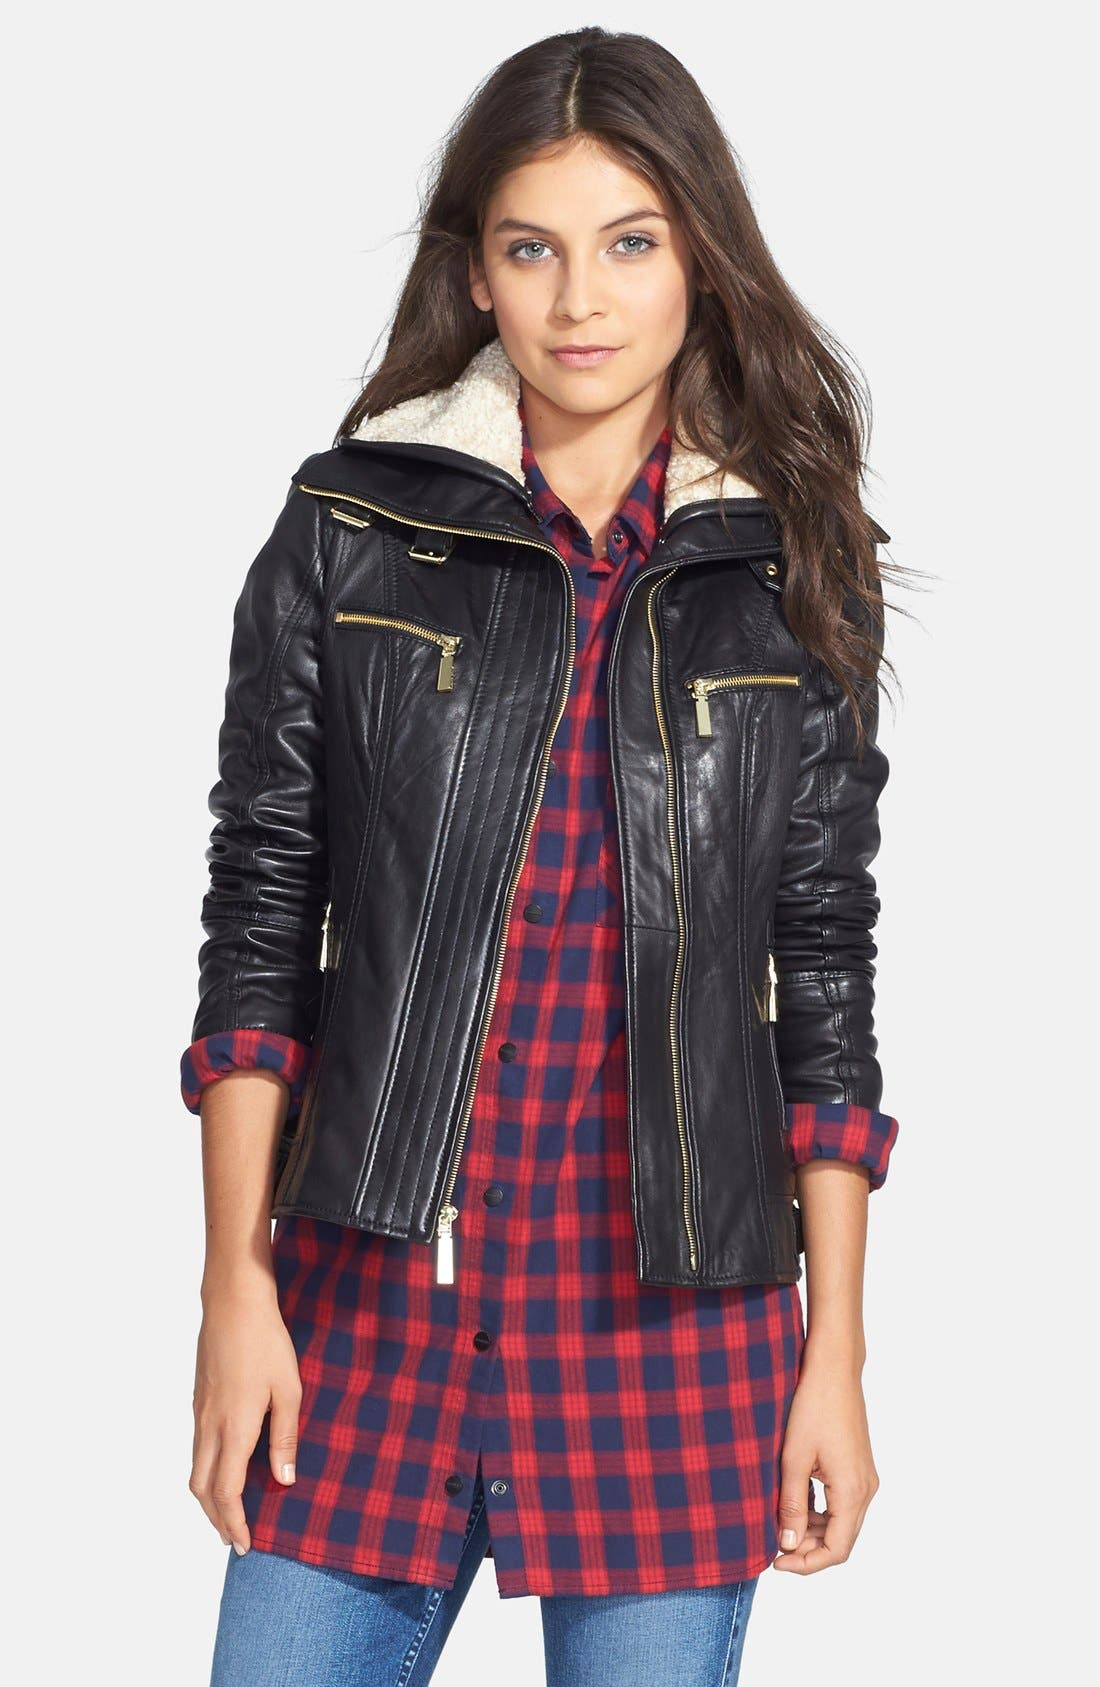 Alternate Image 1 Selected - Vince Camuto Faux Shearling Trim Lambskin Leather Jacket